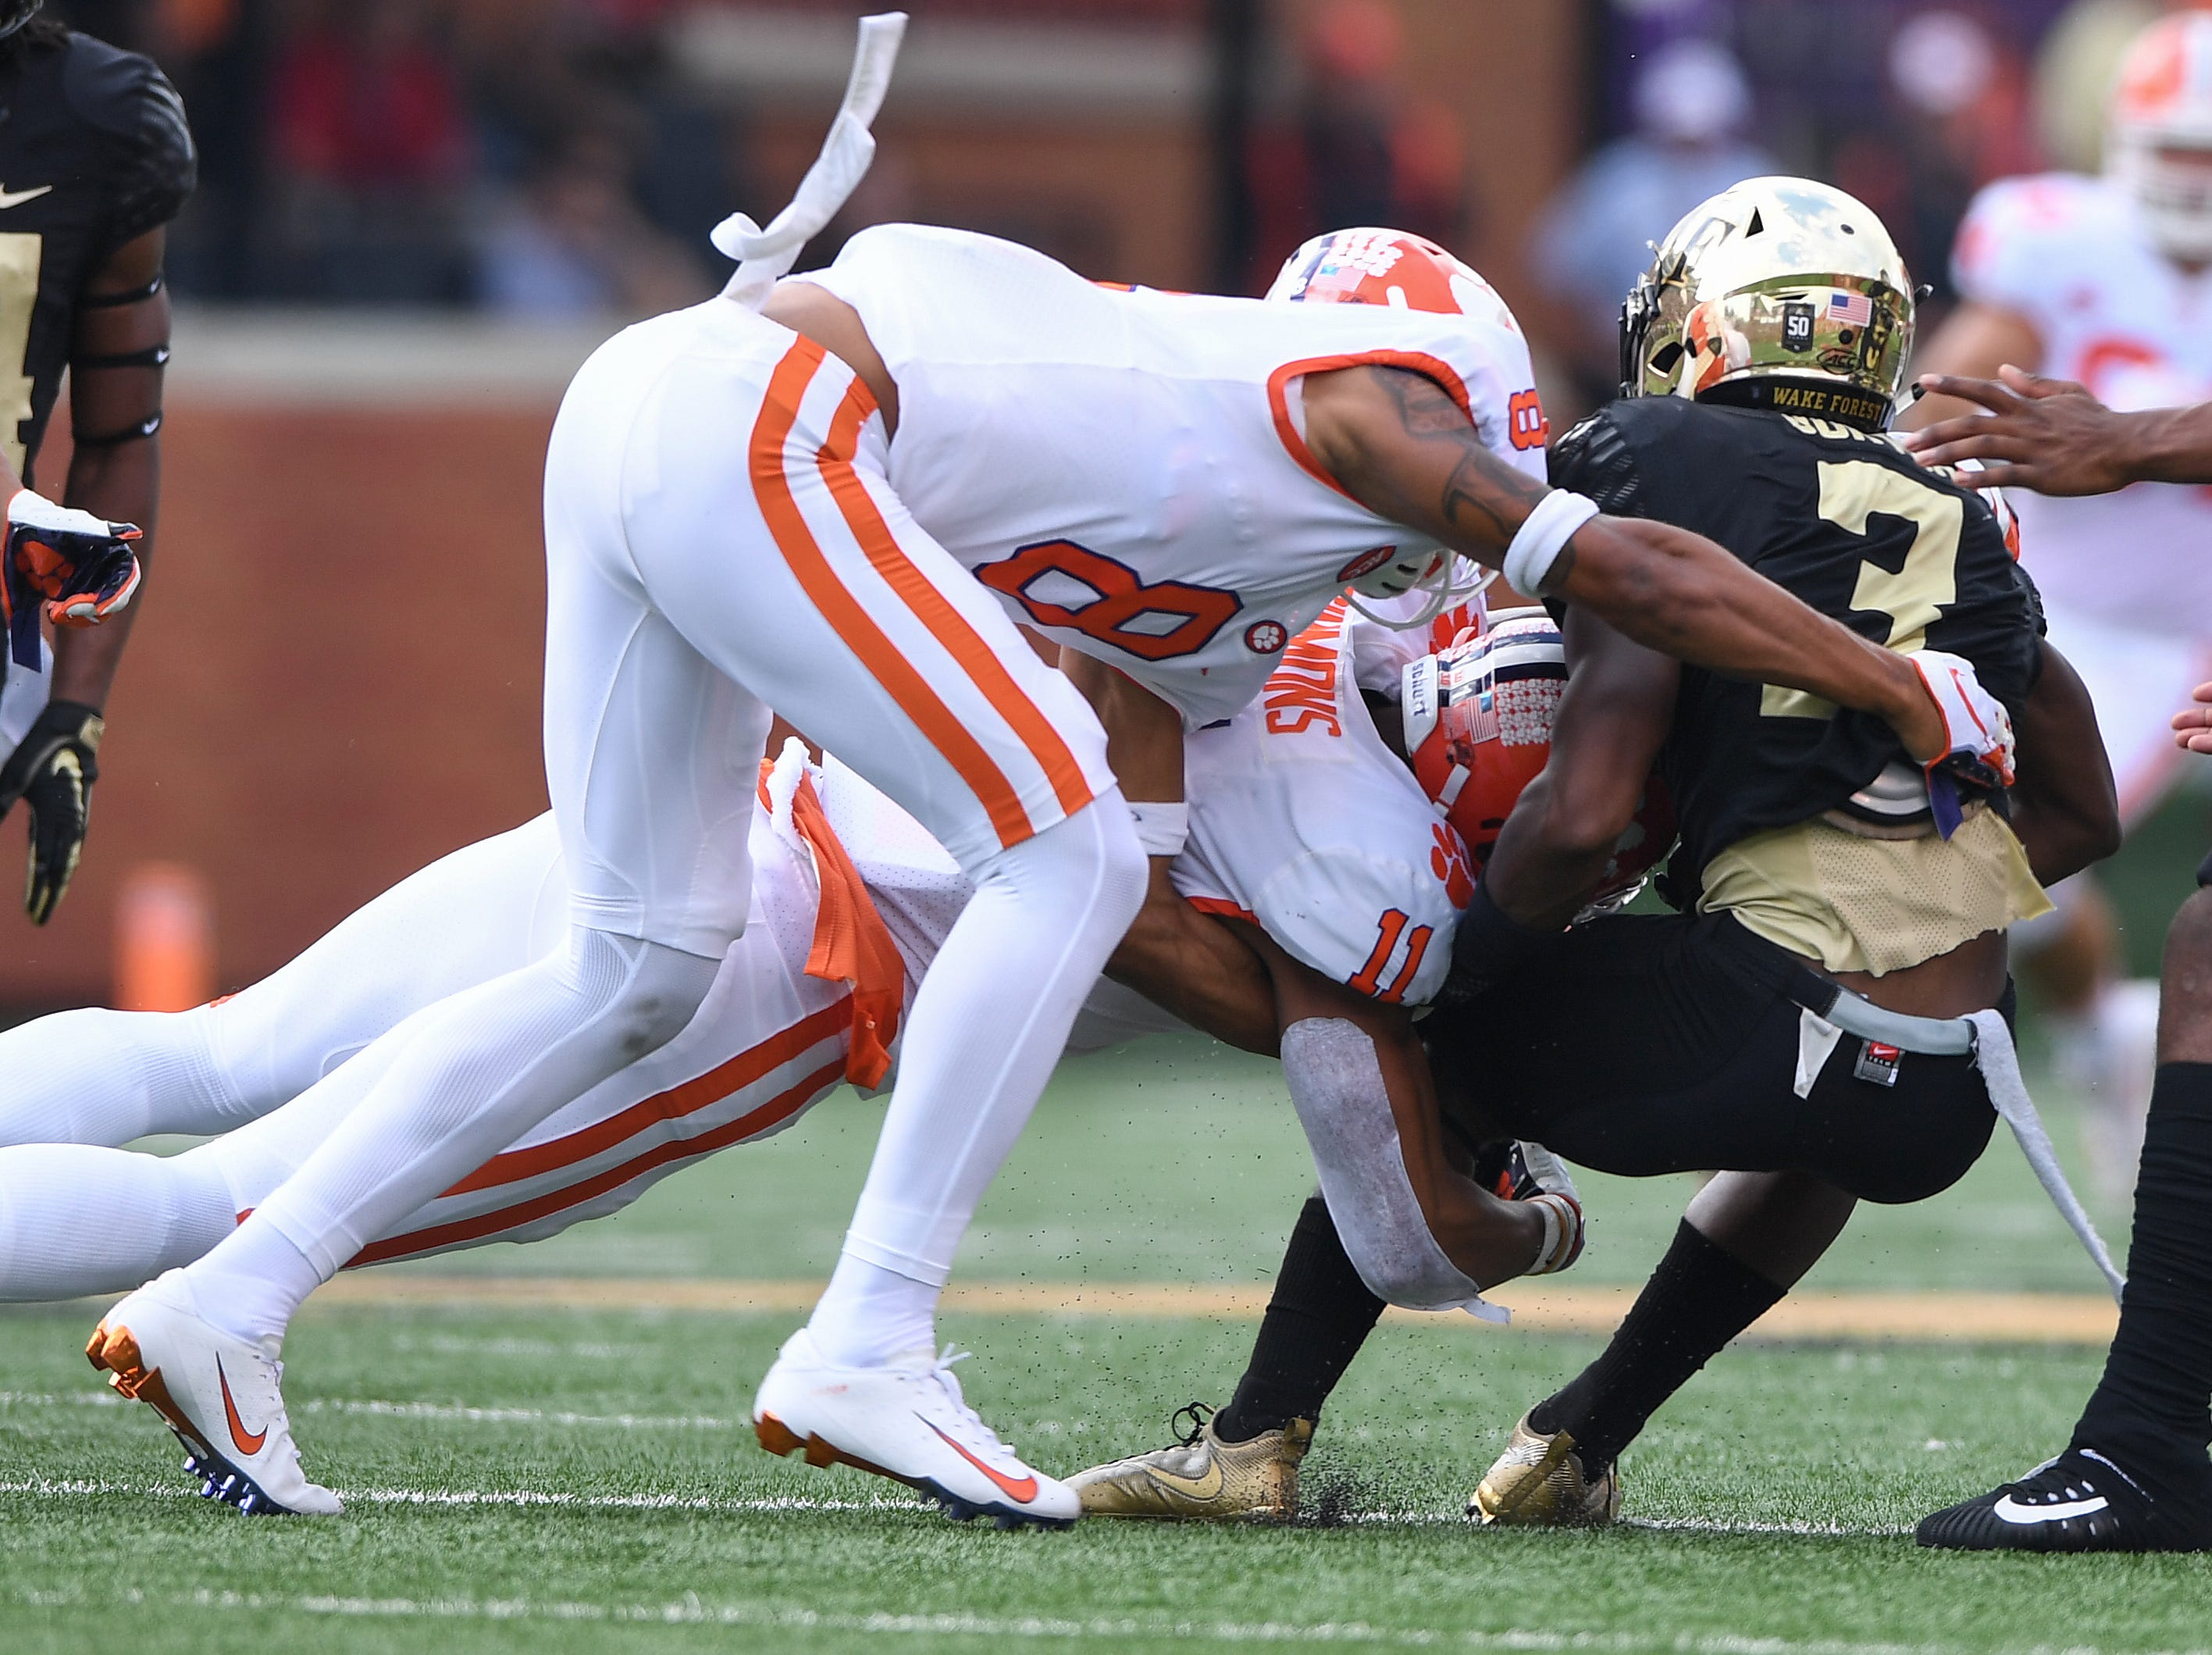 Clemson safety Isaiah Simmons (11) and defensive back A.J. Terrell (8) bring down Wake Forest wide receiver Greg Dortch (3) during the 1st quarter at BB&T Field in Winston Salem, N.C. Saturday, October 6, 2018.